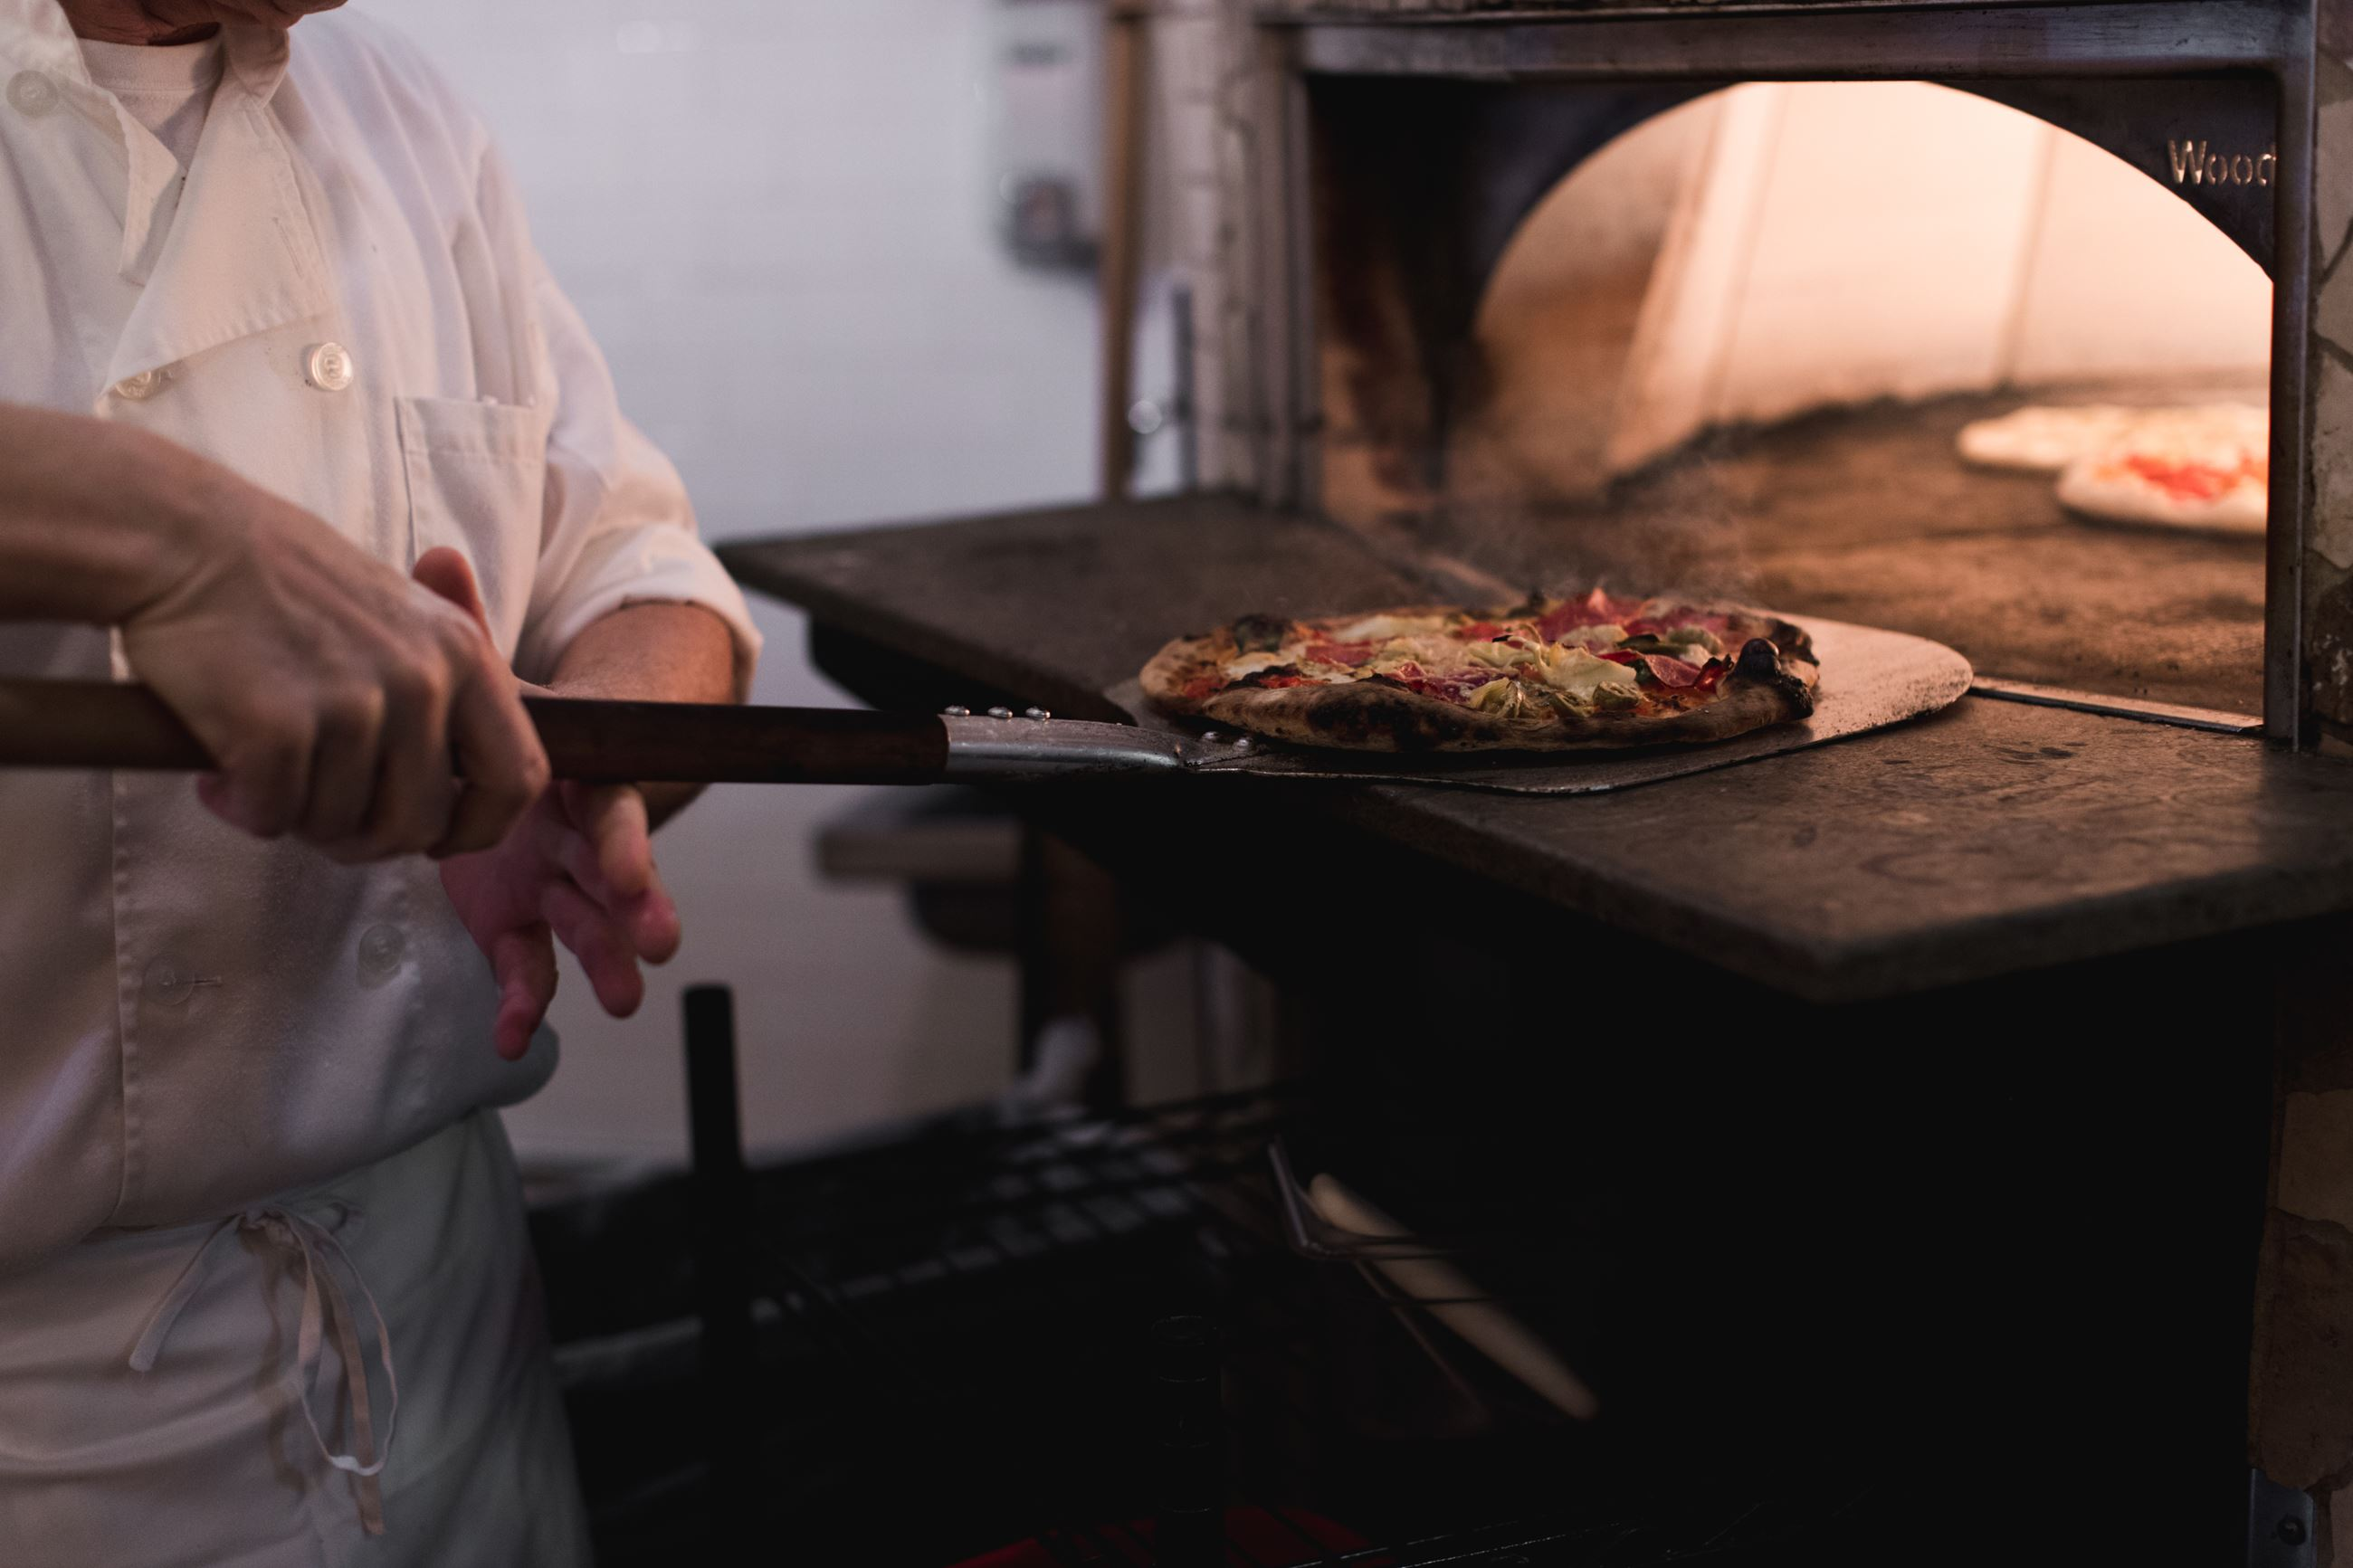 A photo of a pizza being put into a pizza oven